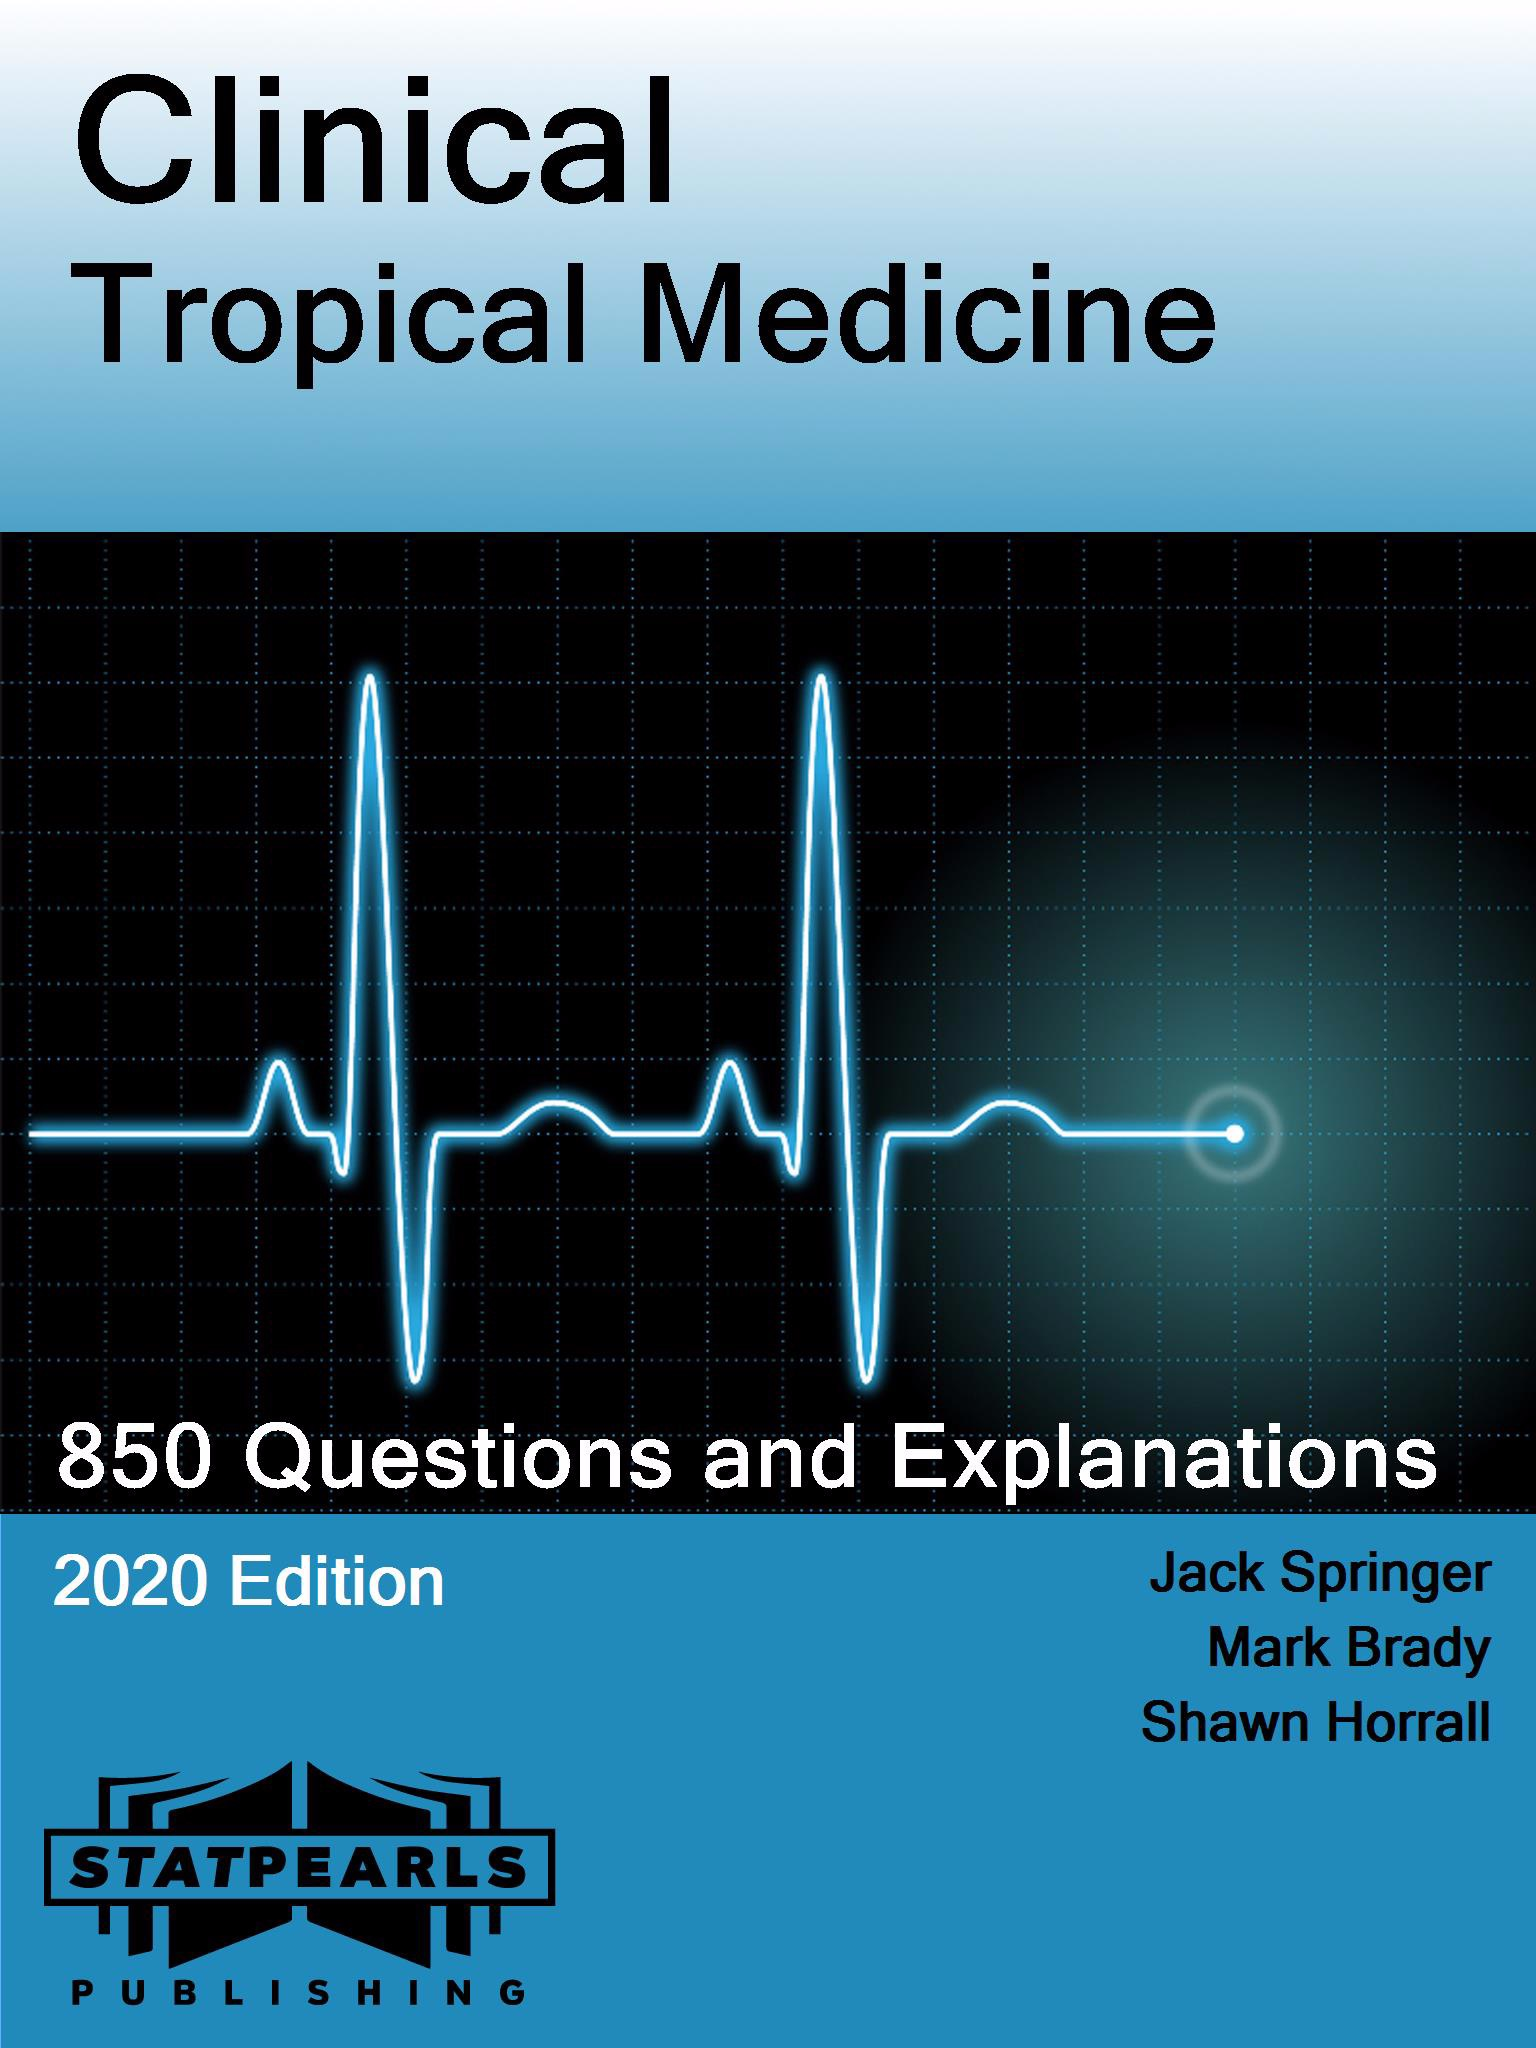 Clinical Tropical Medicine